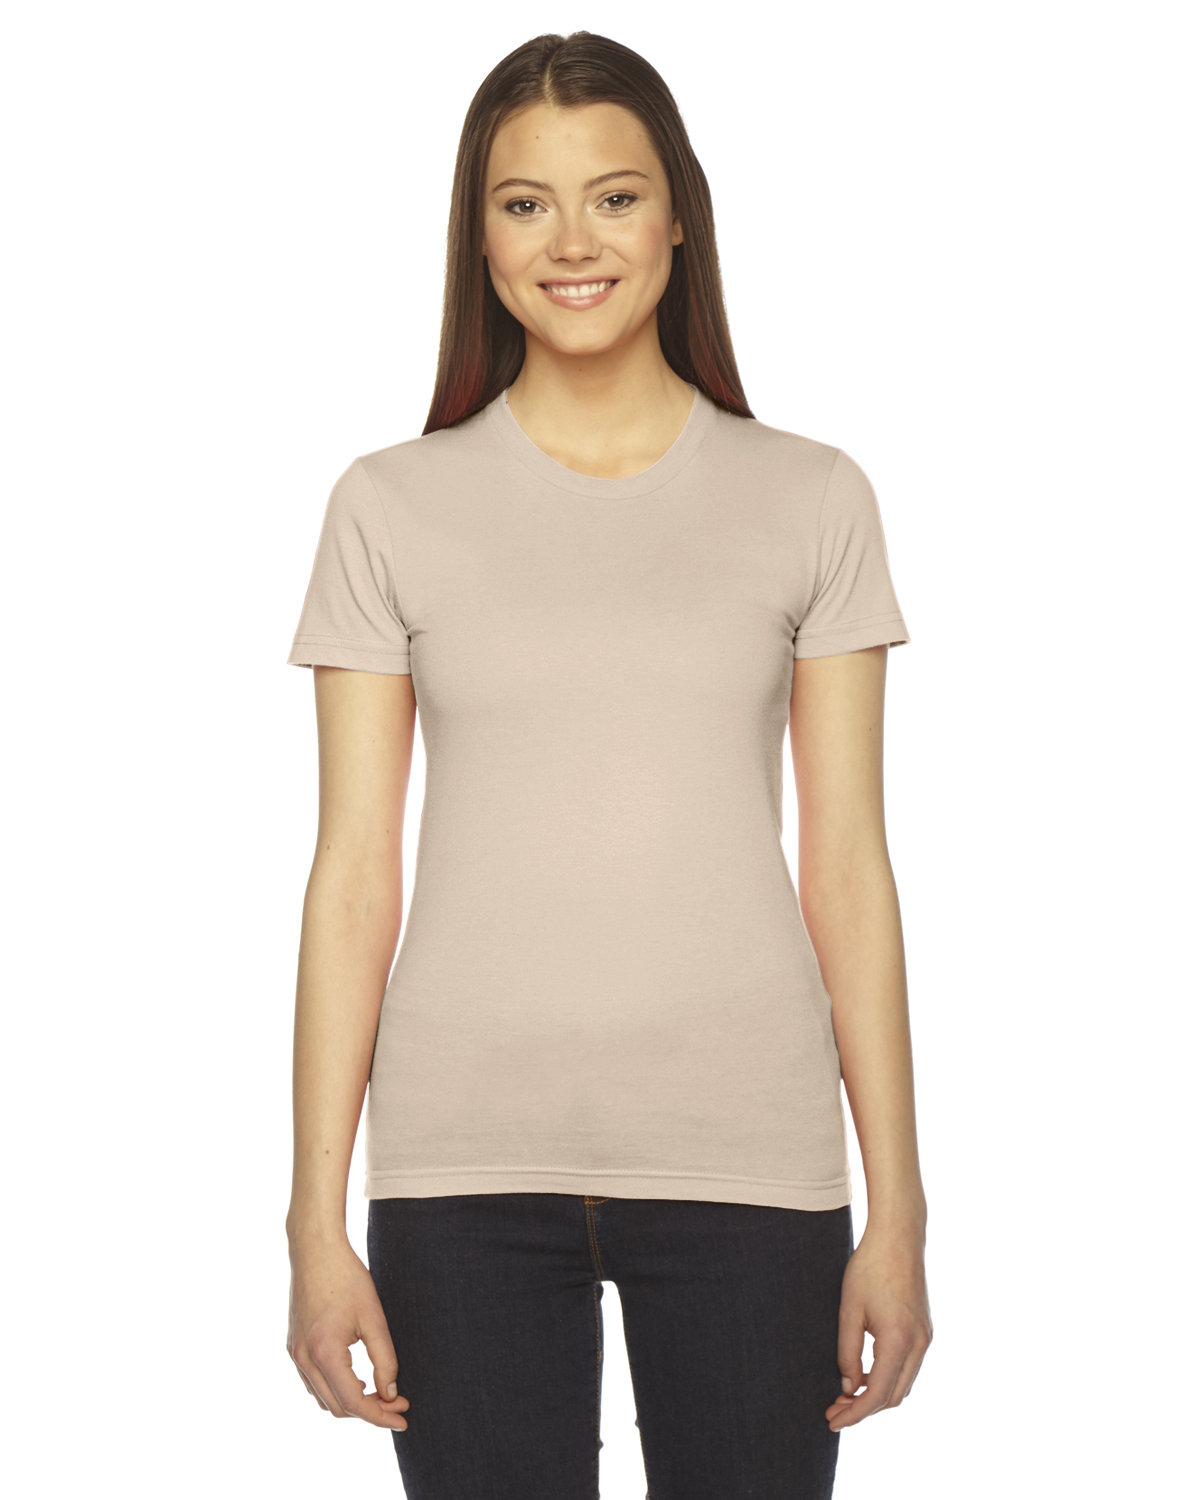 American Apparel Ladies' Fine Jersey Short-Sleeve T-Shirt CREME